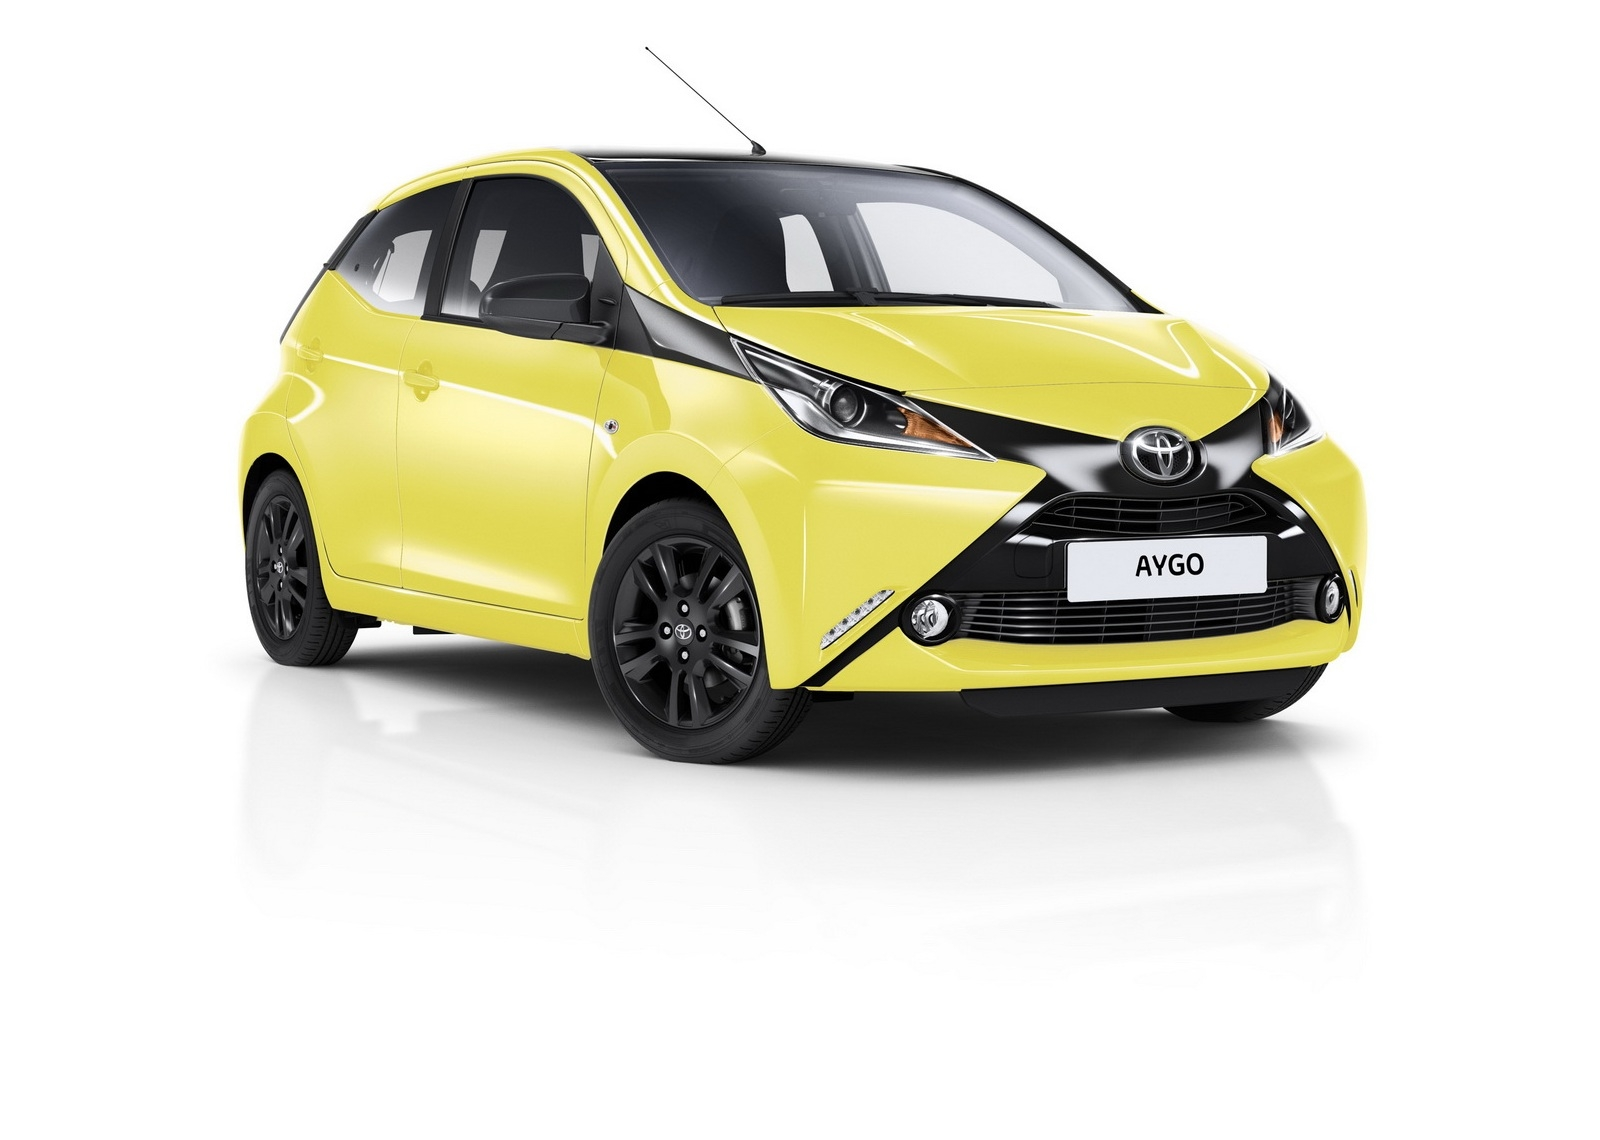 toyota aygo x cite le jaune remplace le bleu. Black Bedroom Furniture Sets. Home Design Ideas